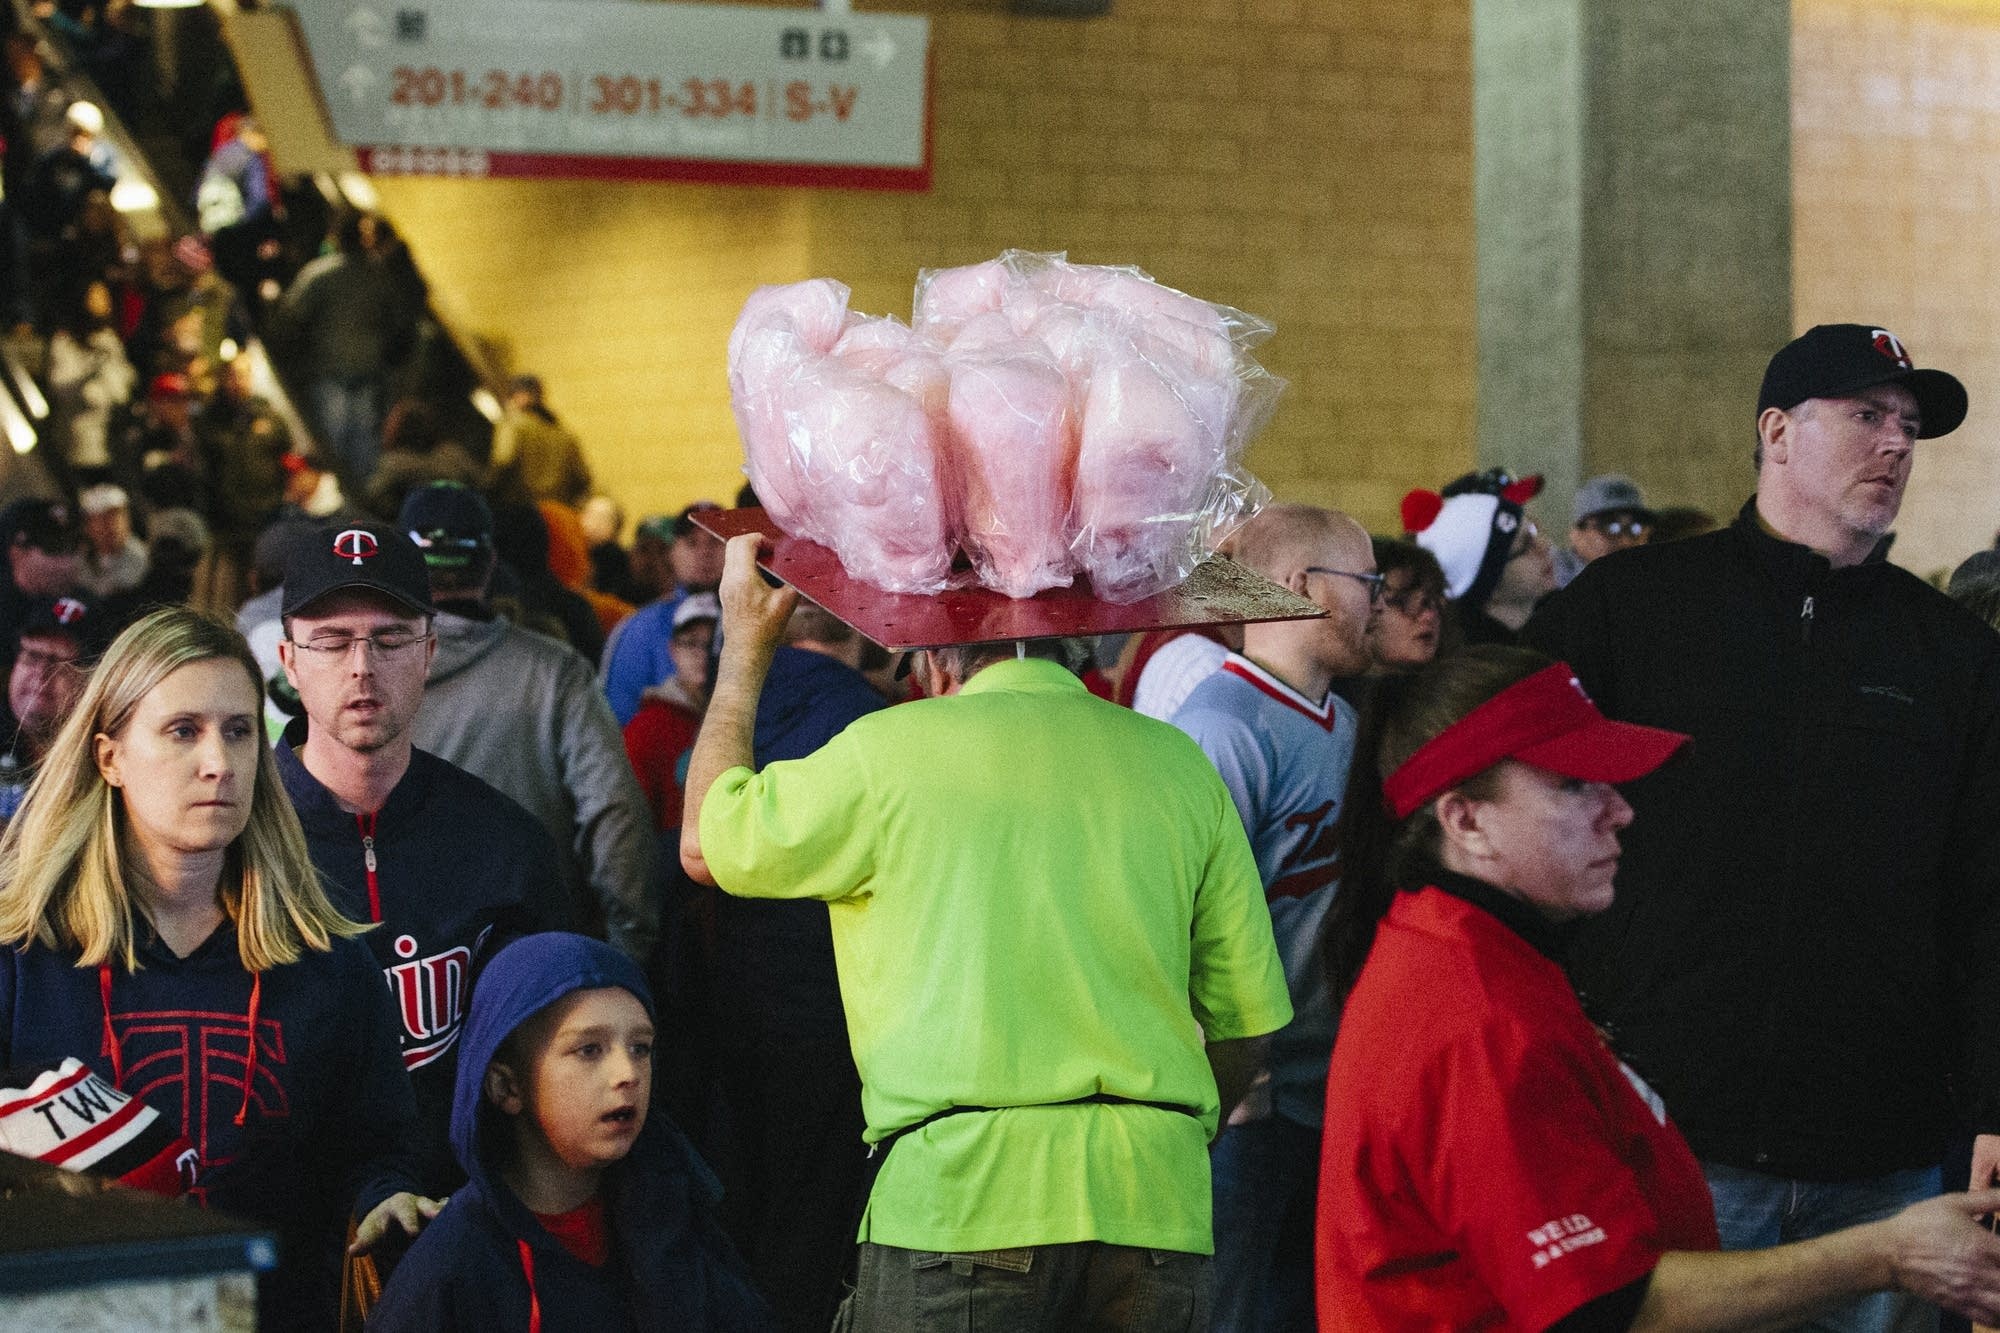 A cotton candy vendor navigates the crowds.